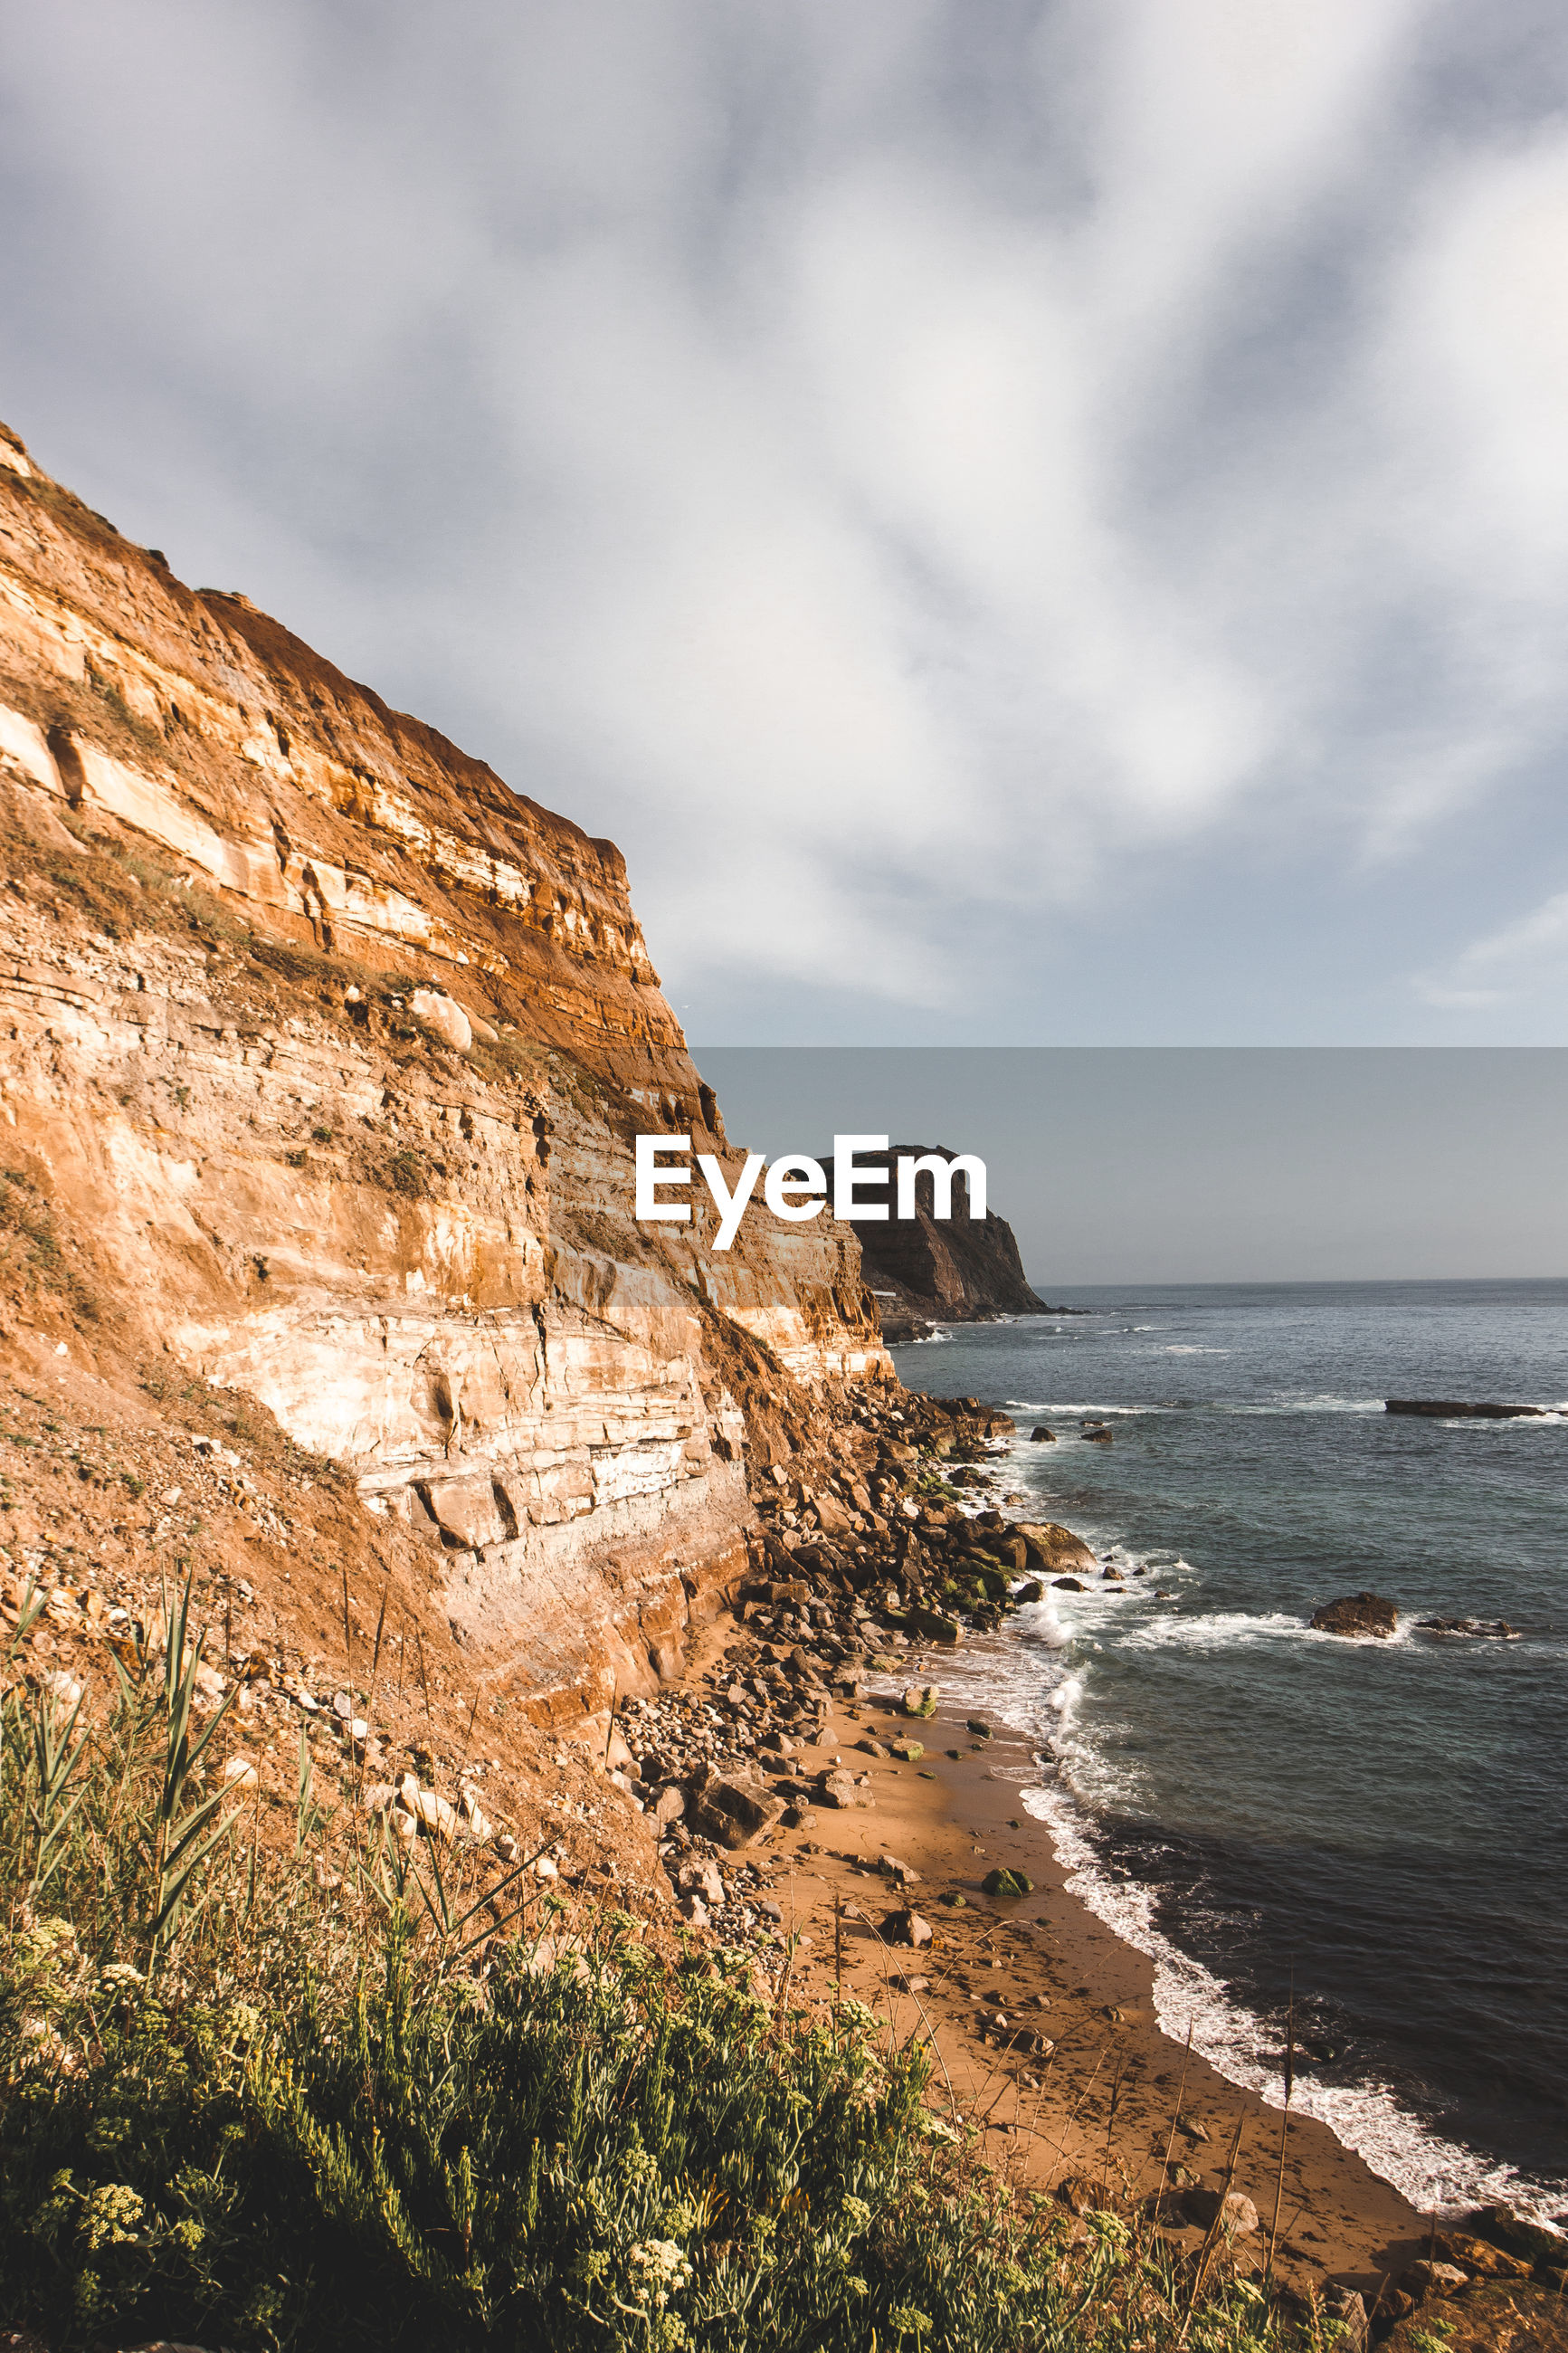 SCENIC VIEW OF ROCK FORMATIONS ON SEA AGAINST SKY